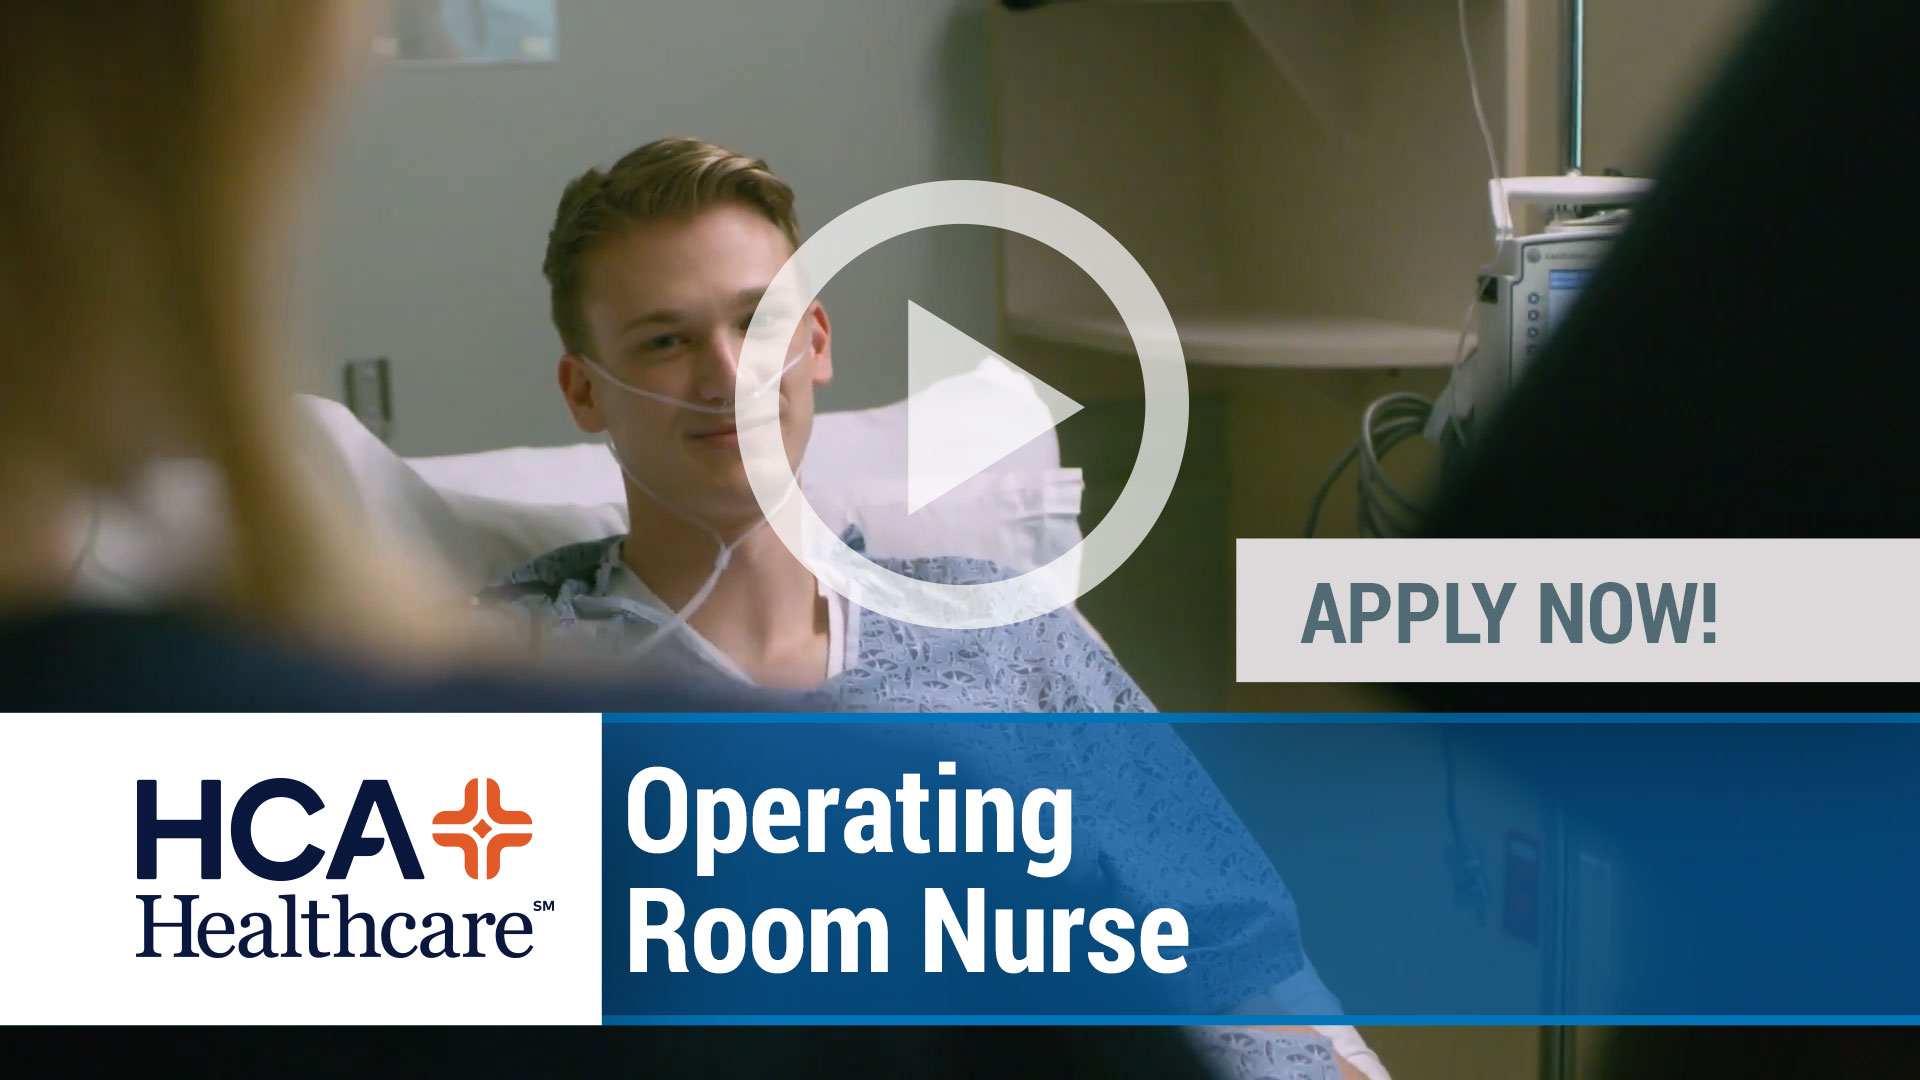 Watch our careers video for available job opening Operating Room Nurse in Aventura, Florida